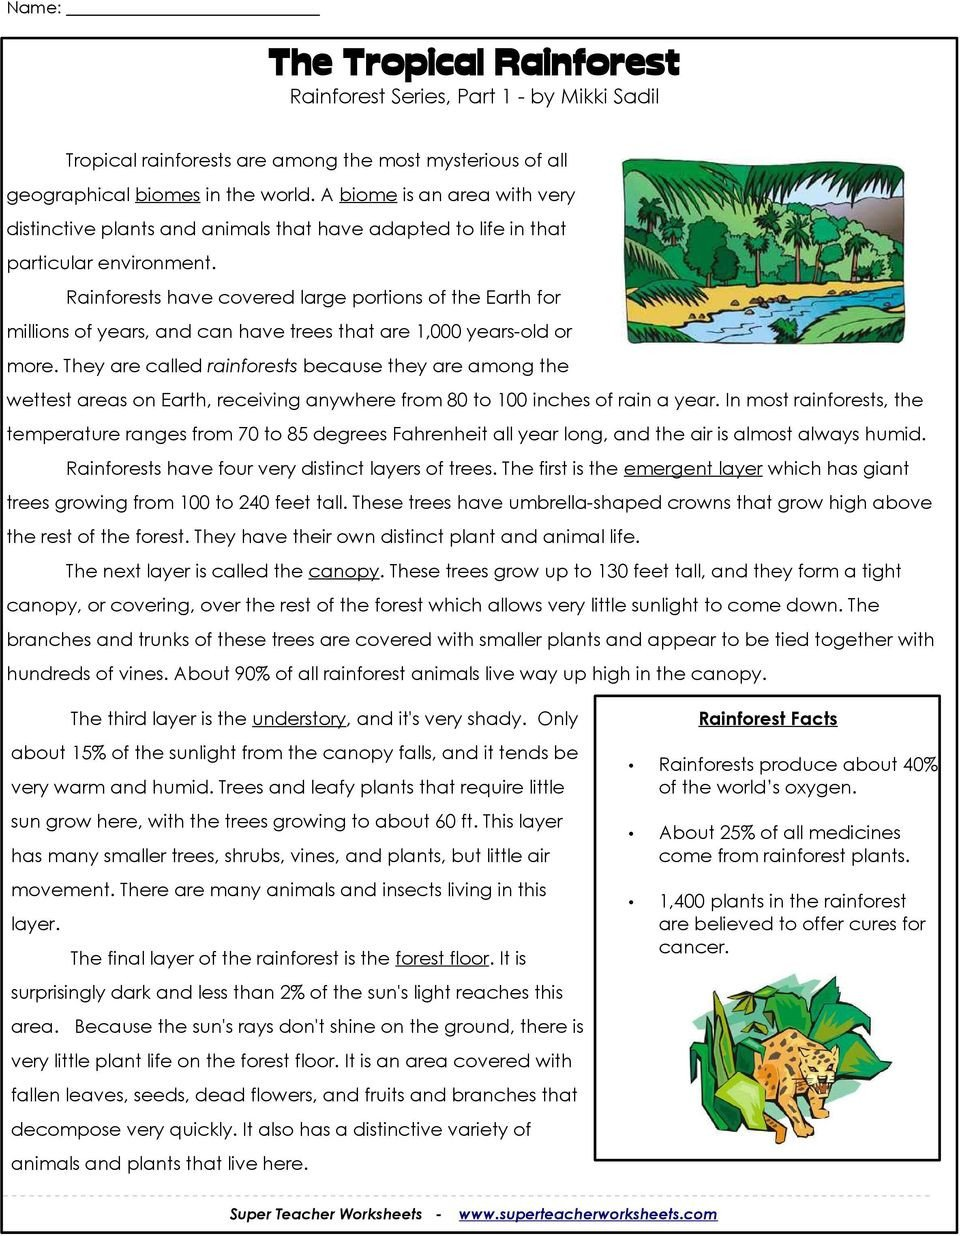 Rainforest Worksheets Free the Tropical Rainforest Rainforest Series Part 1 by Mikki